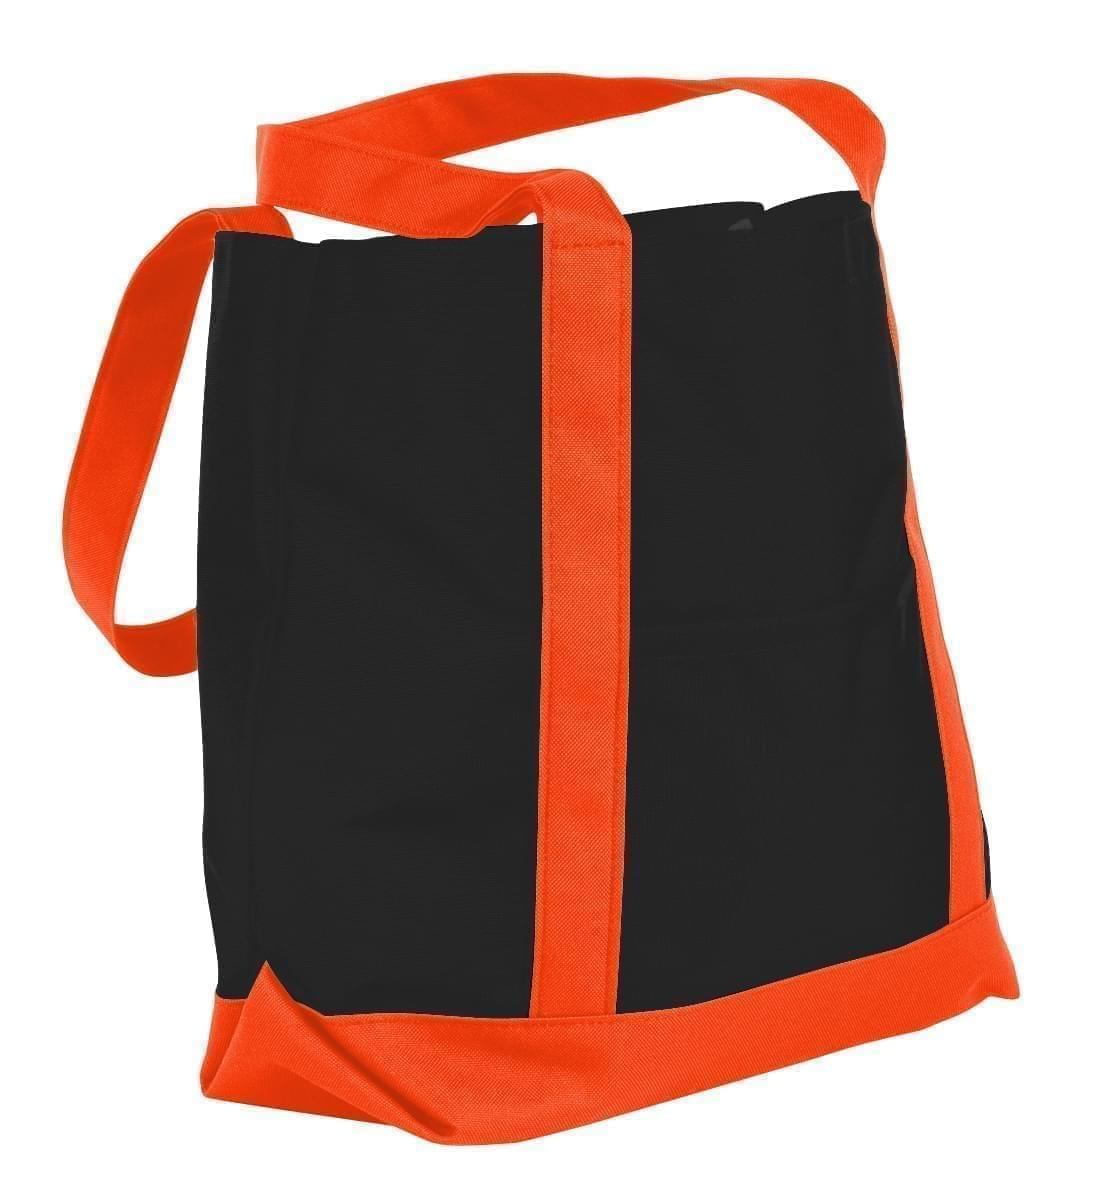 USA Made Nylon Poly Boat Tote Bags, Black-Orange, XAACL1UAOJ